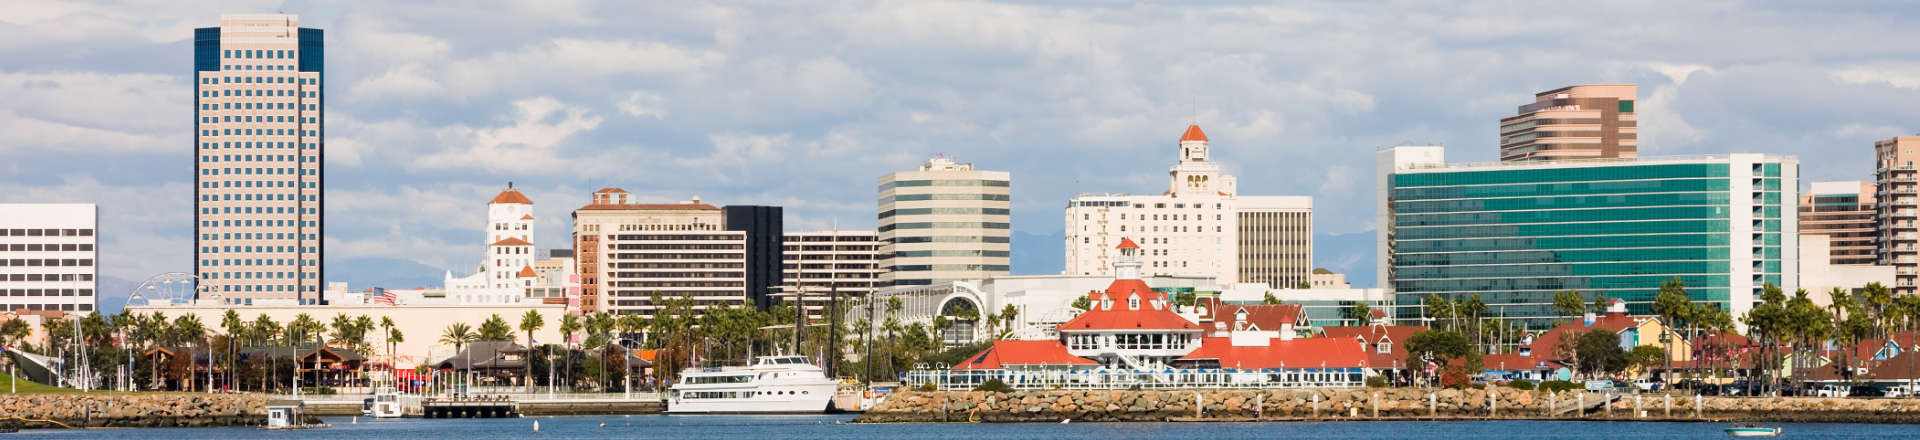 panoramic view of Long Beach, CA